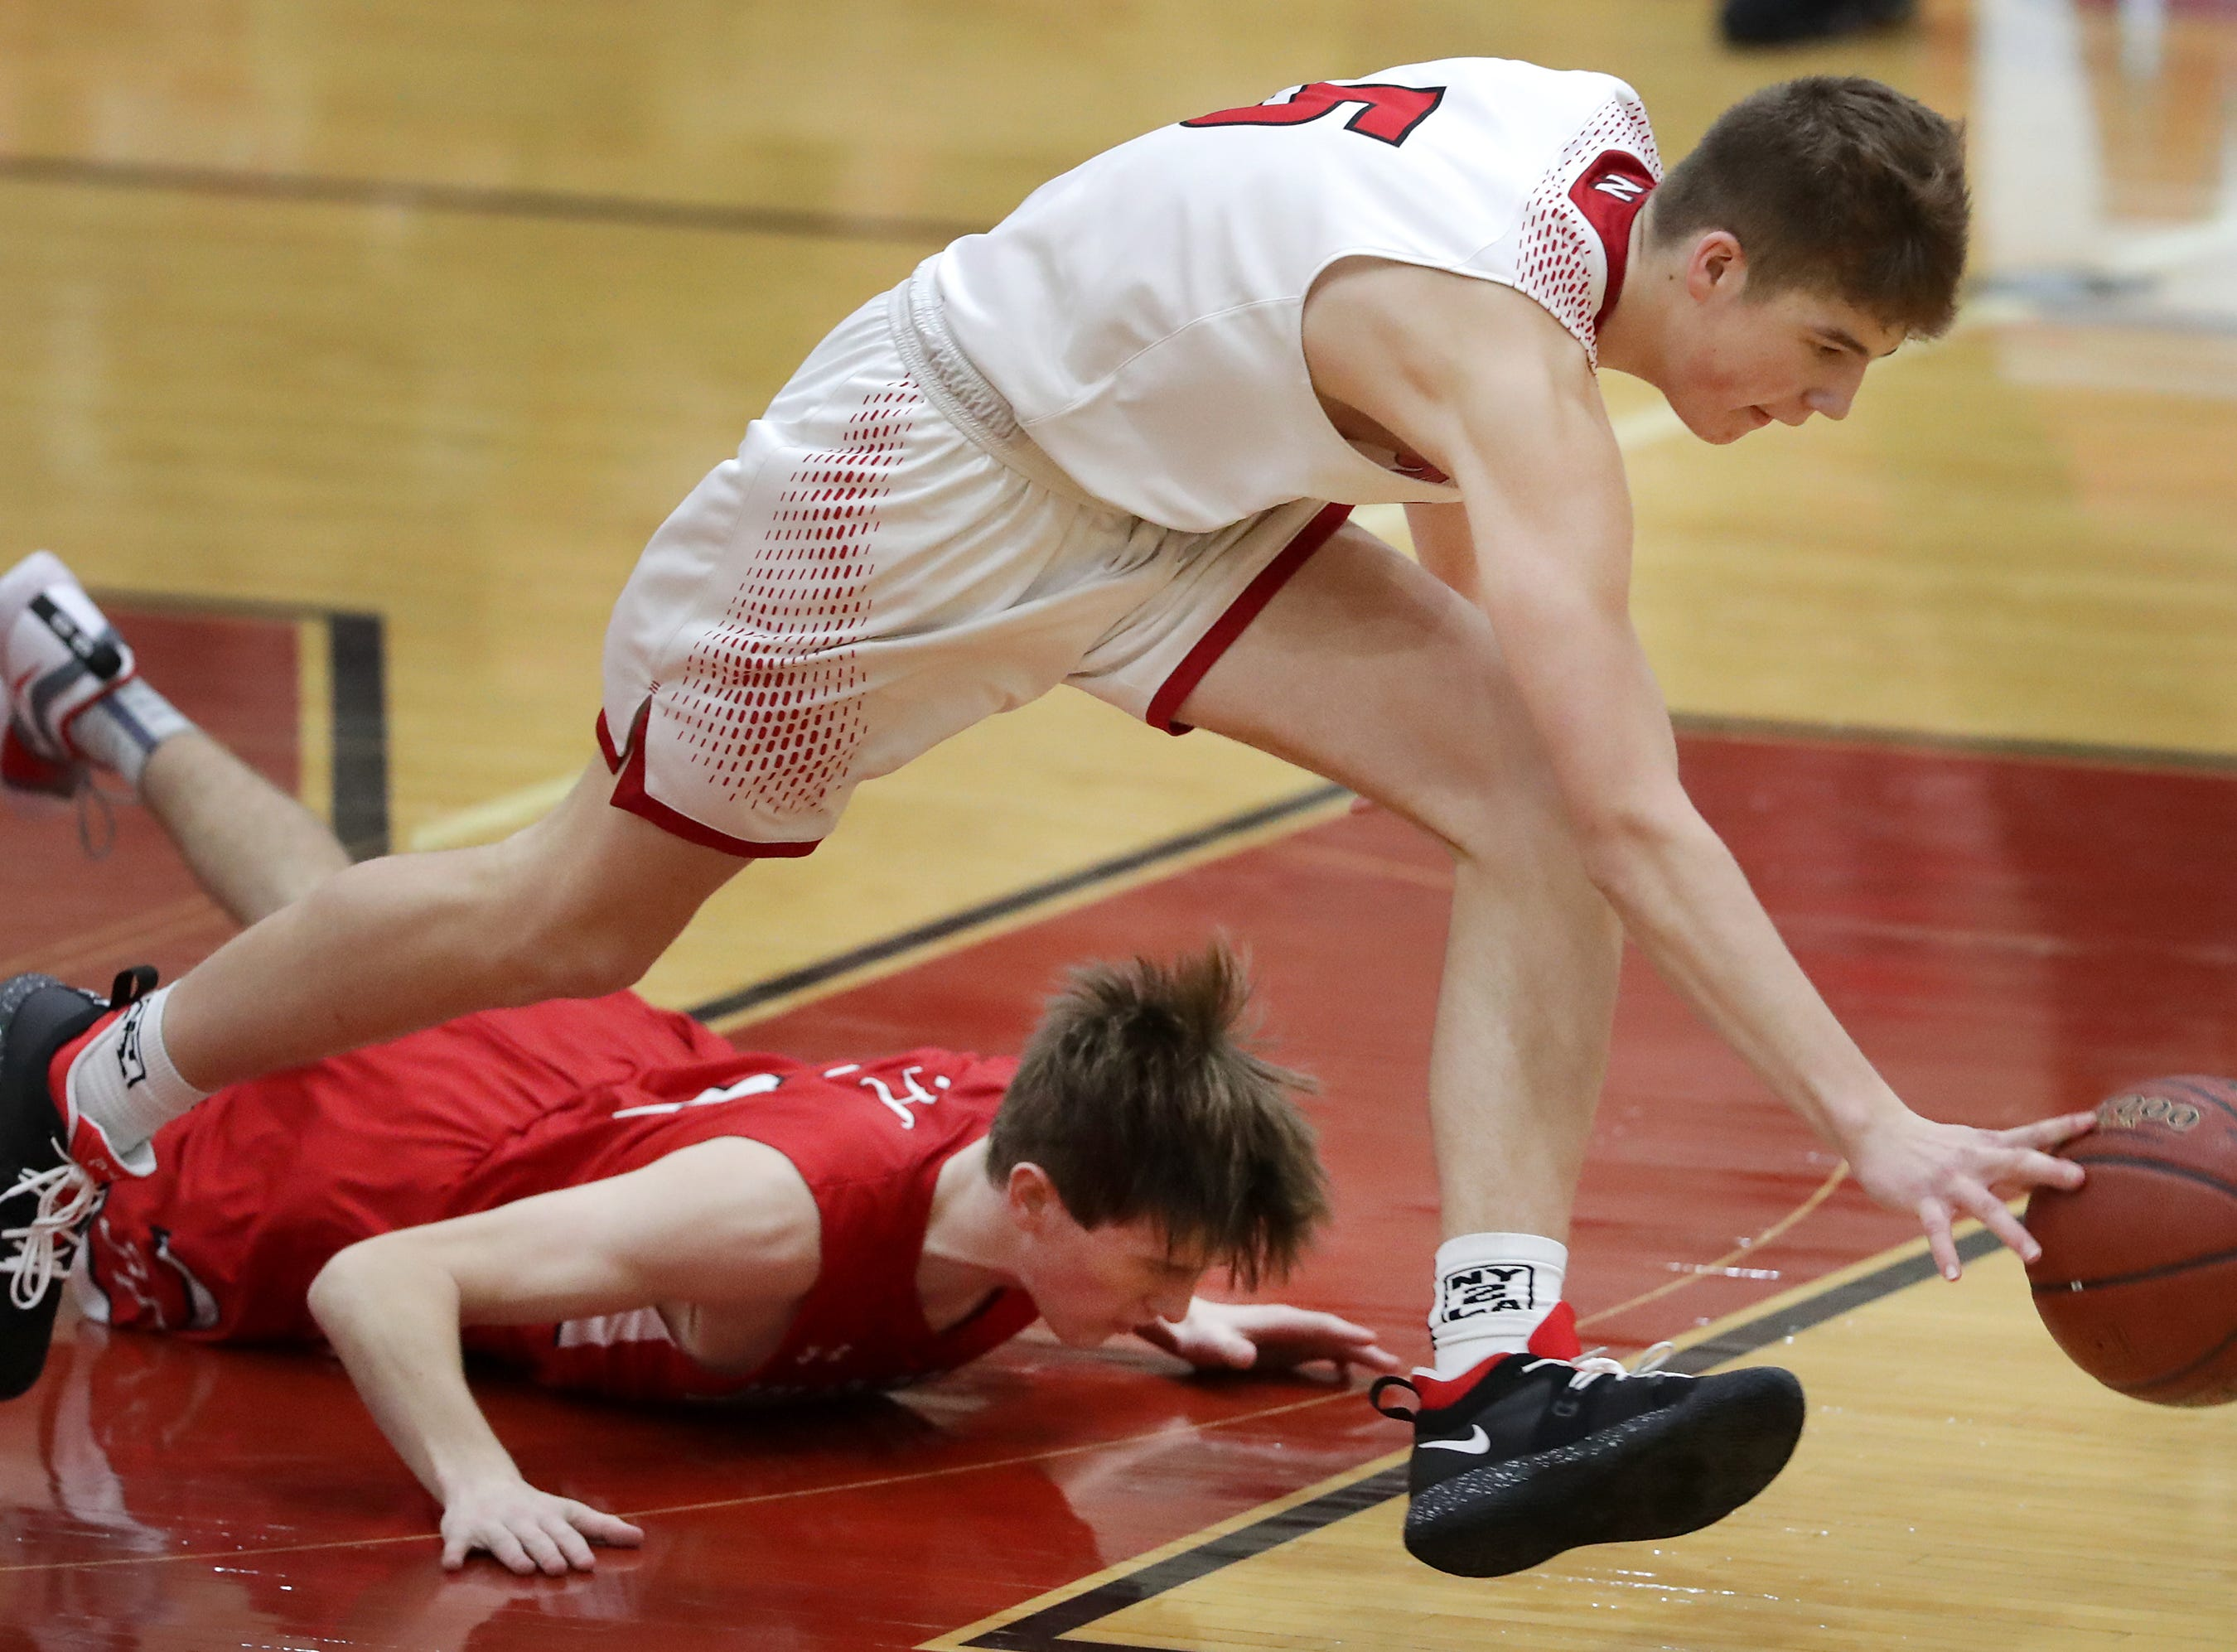 Neenah High School's #5 Max Klesmit against Hortonville High School's #2 Parker Lawrence during their Fox Valley Association boys basketball game on Friday, November 30, 2018, in Neenah, Wis. Neenah defeated Hortonville 71 to 67 in overtime.Wm. Glasheen/USA TODAY NETWORK-Wisconsin.